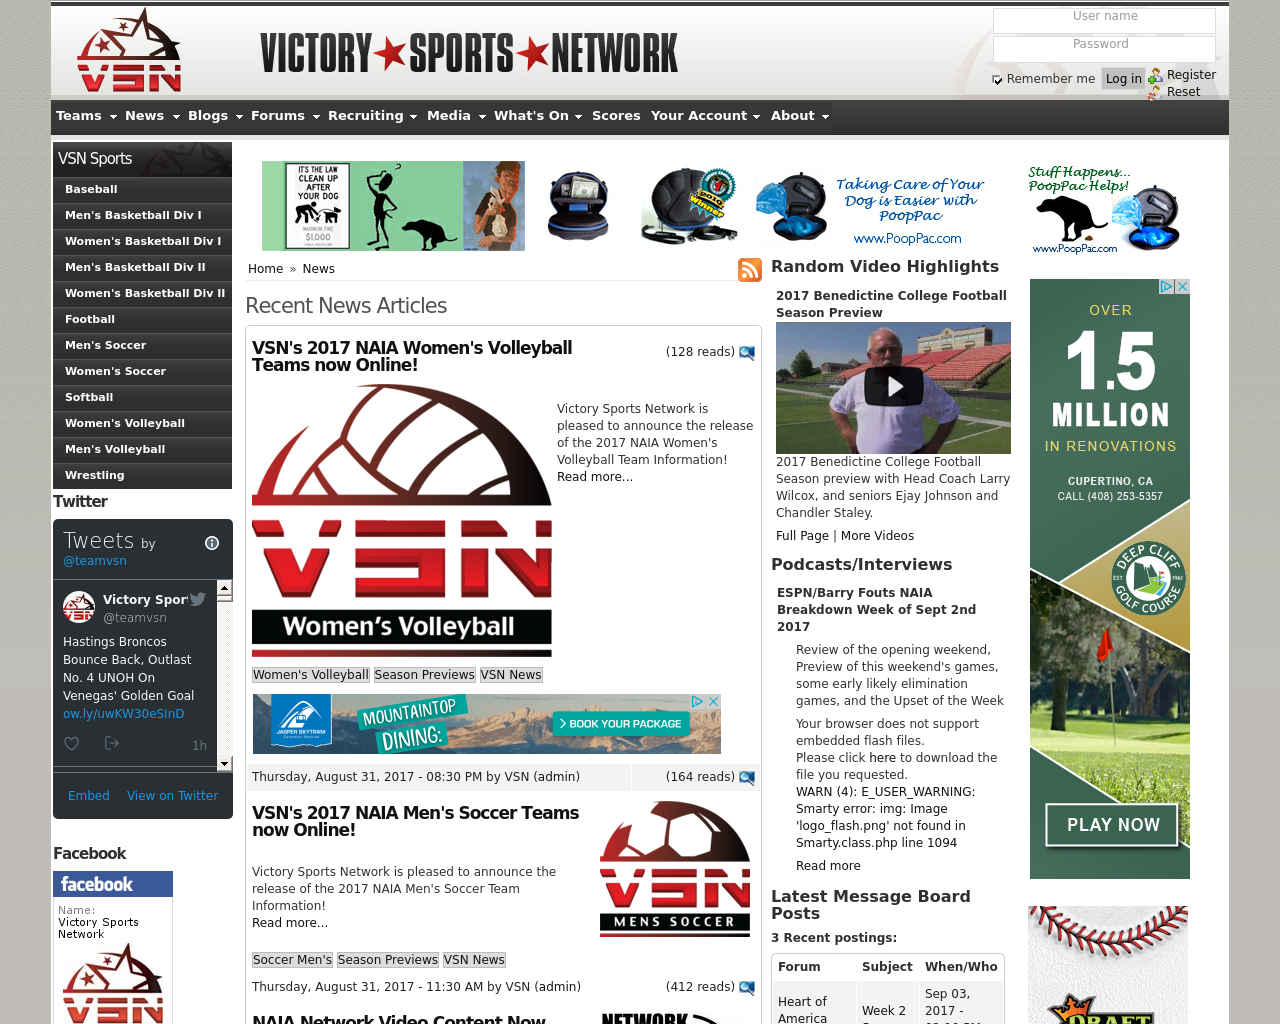 Victory-Sports-Network-Advertising-Reviews-Pricing